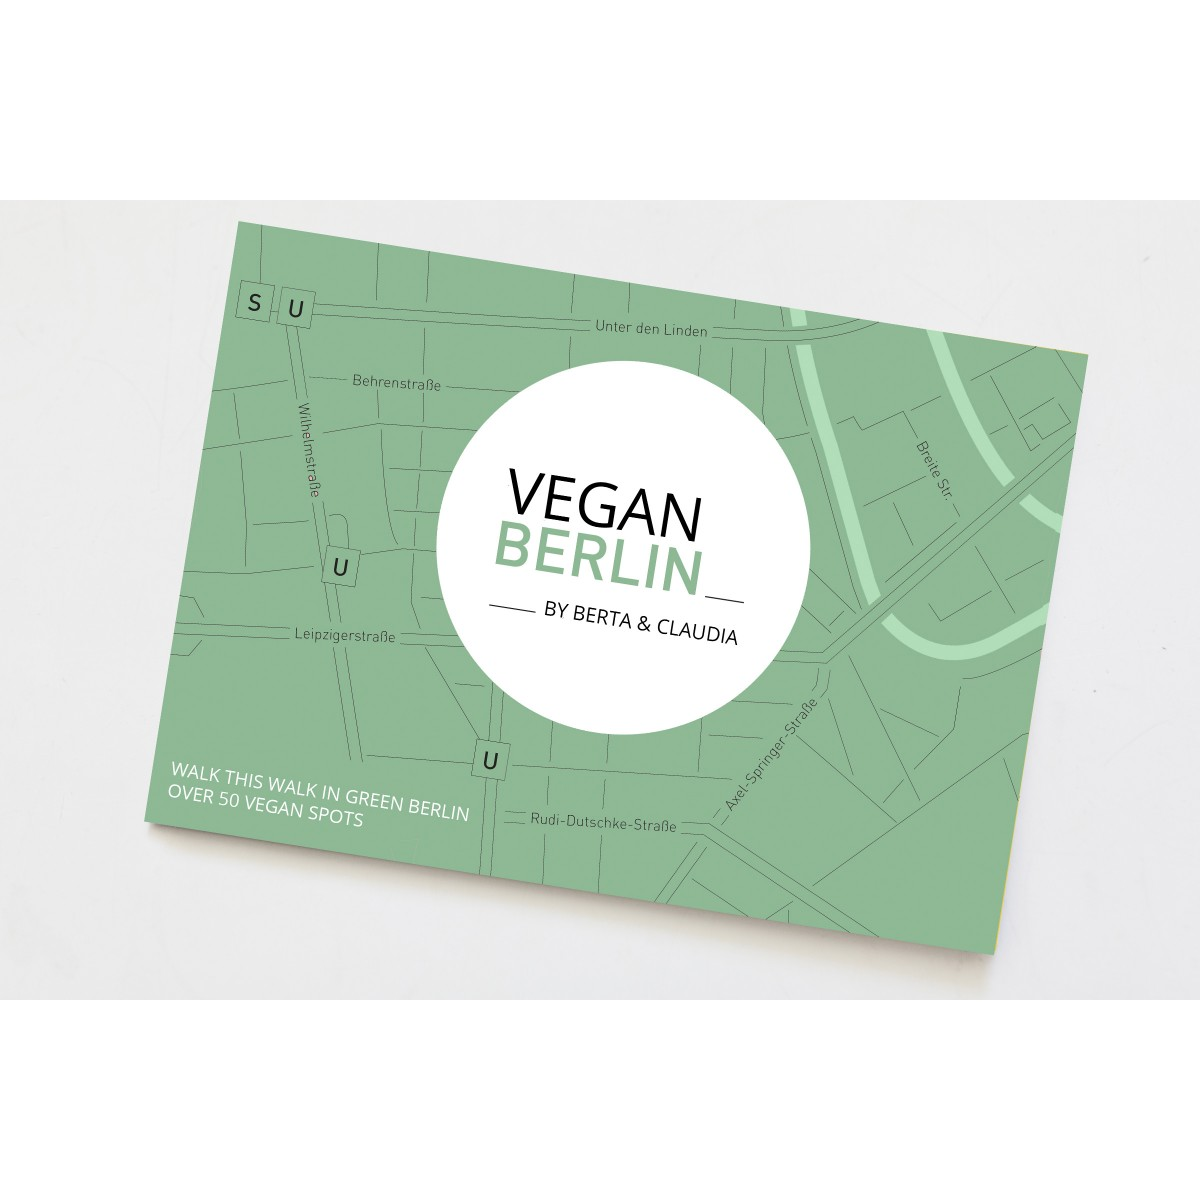 VeganBerlin Map - Walk This Way